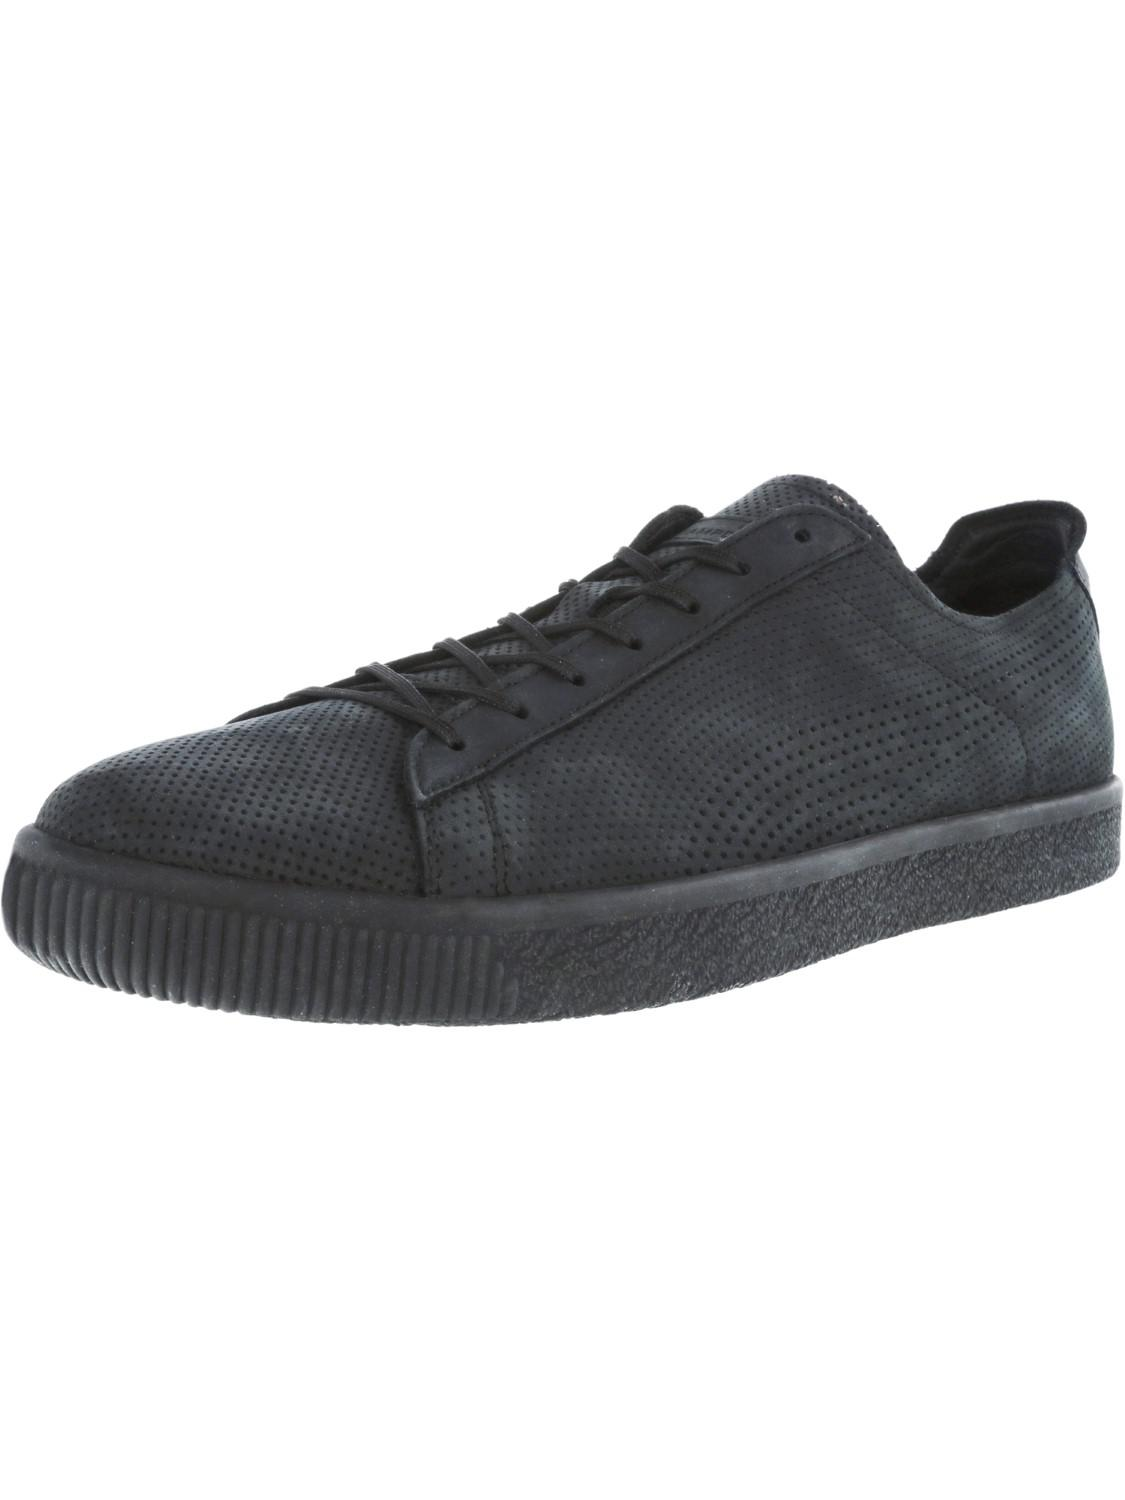 f26b7bf04da Lyst - Puma Stampd Clyde Ankle-high Leather Fashion Sneaker - 13m in ...